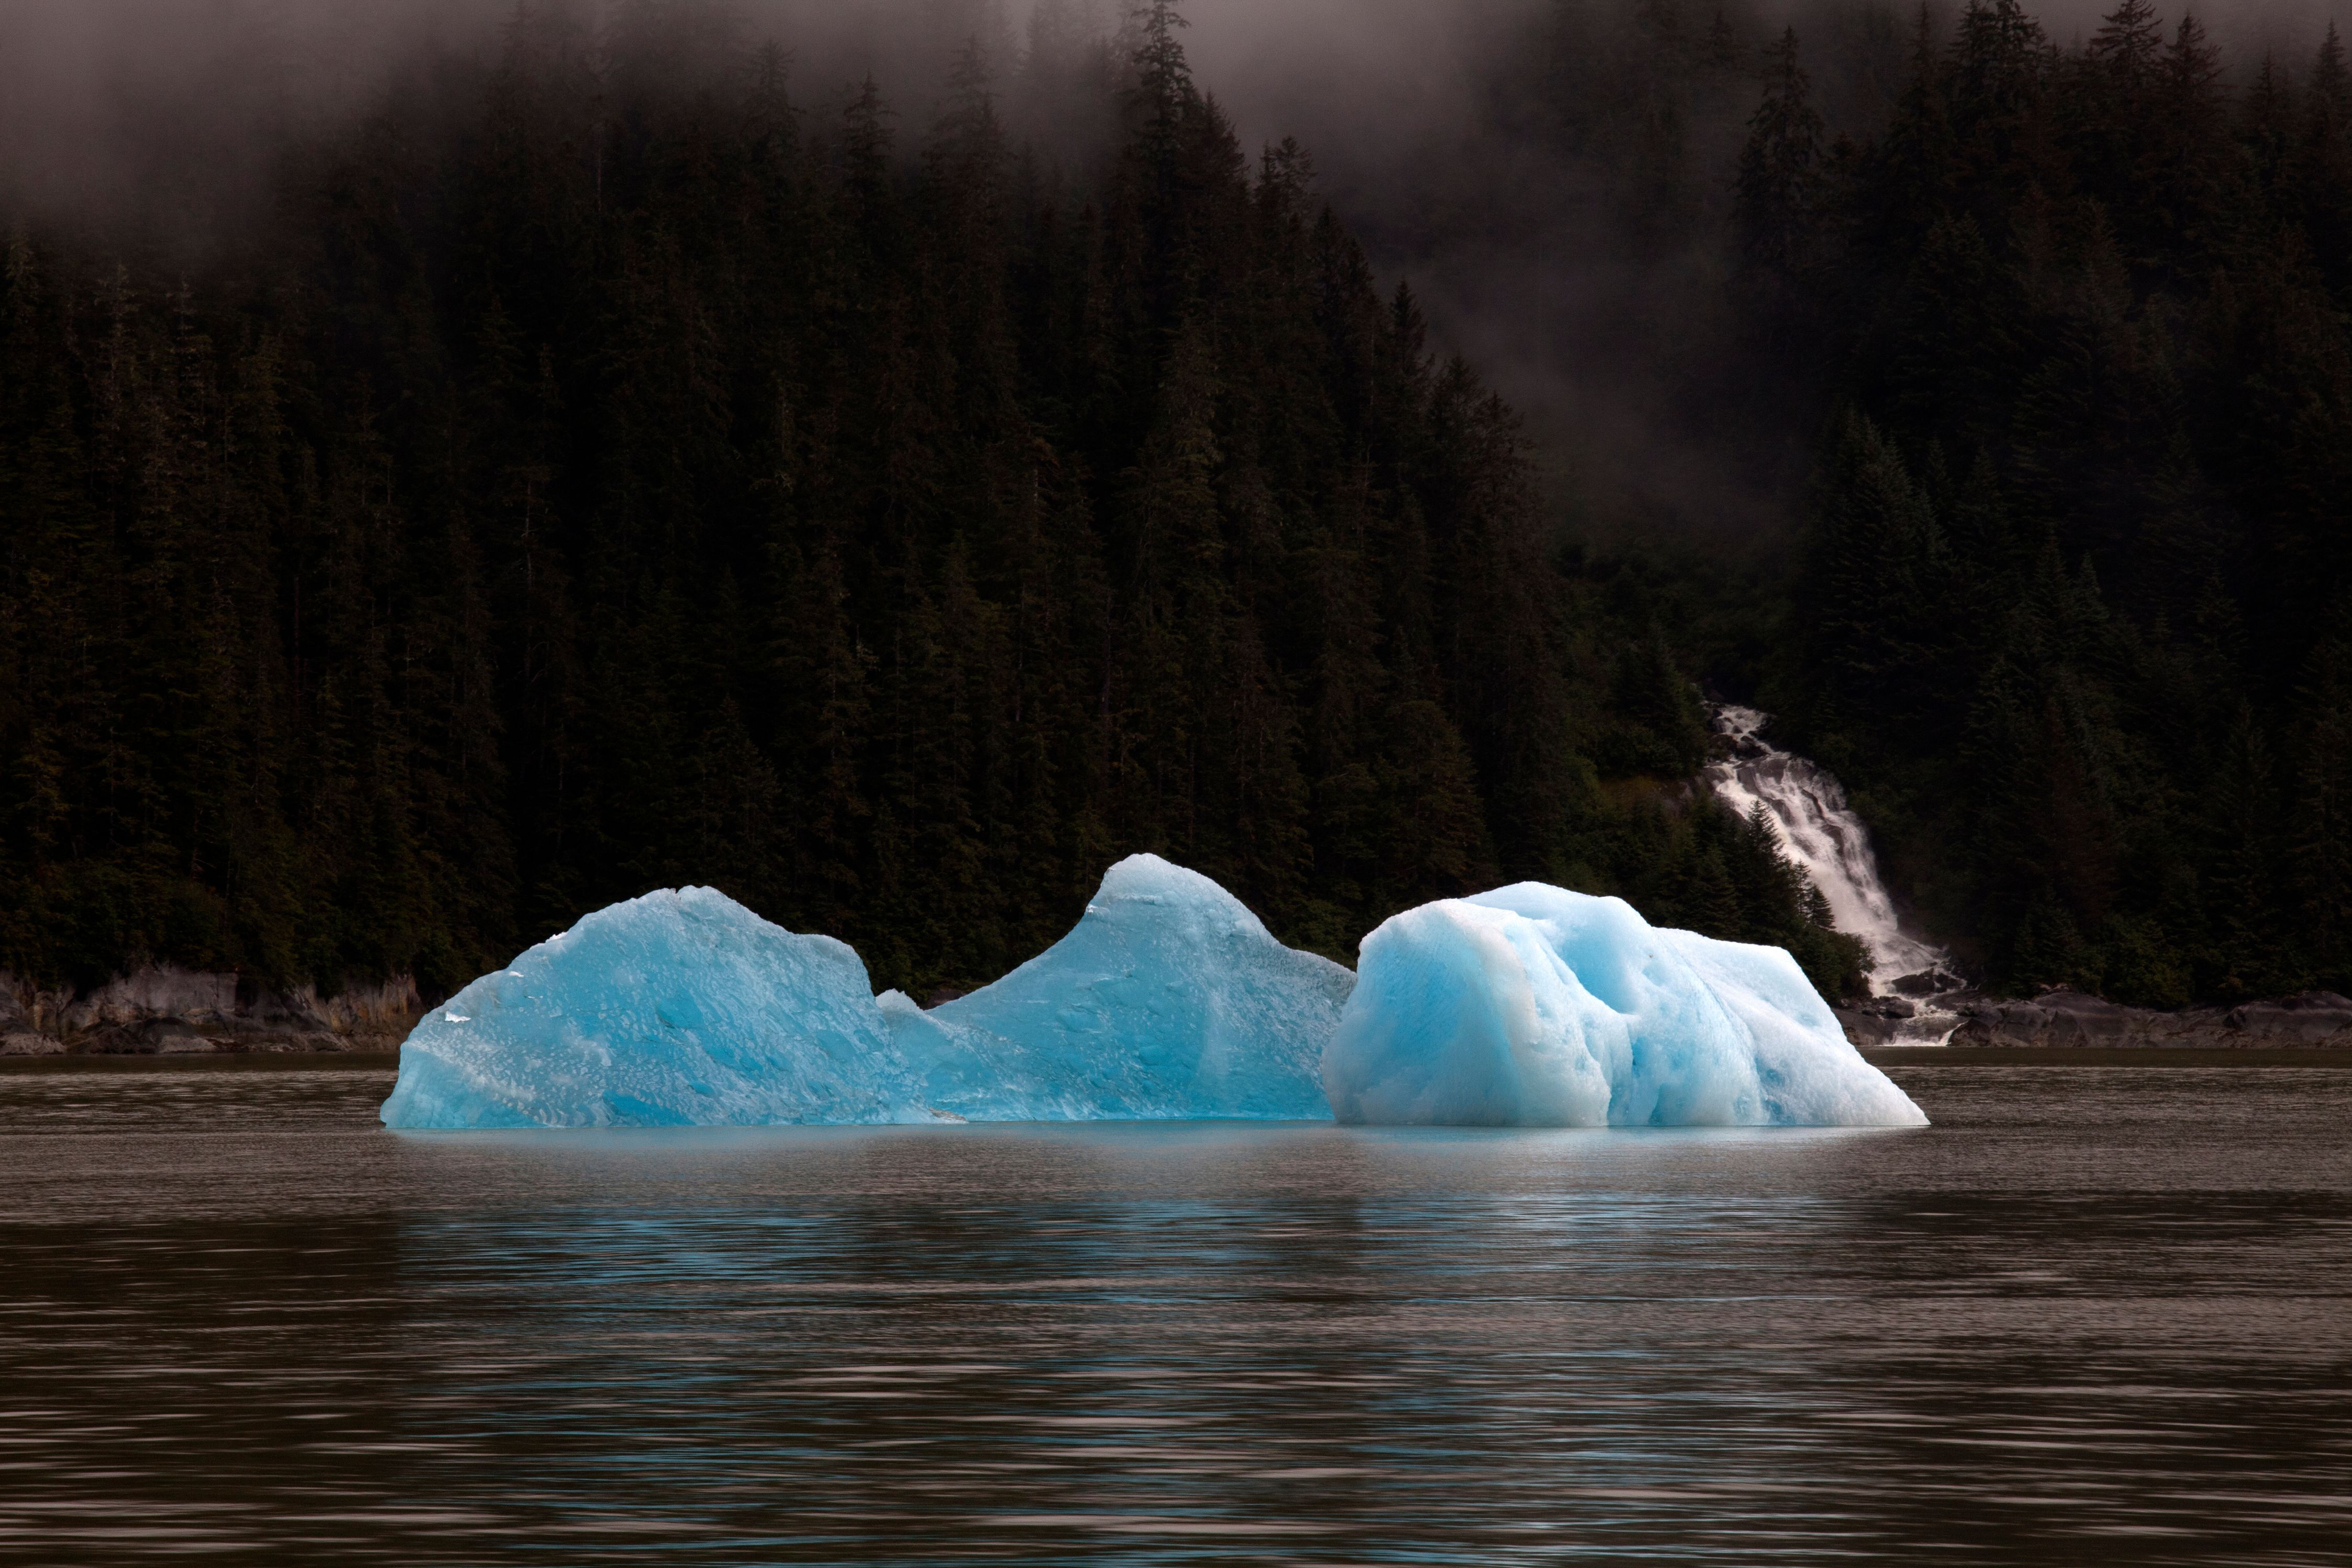 Blue Gems of Ice Float in the Tide